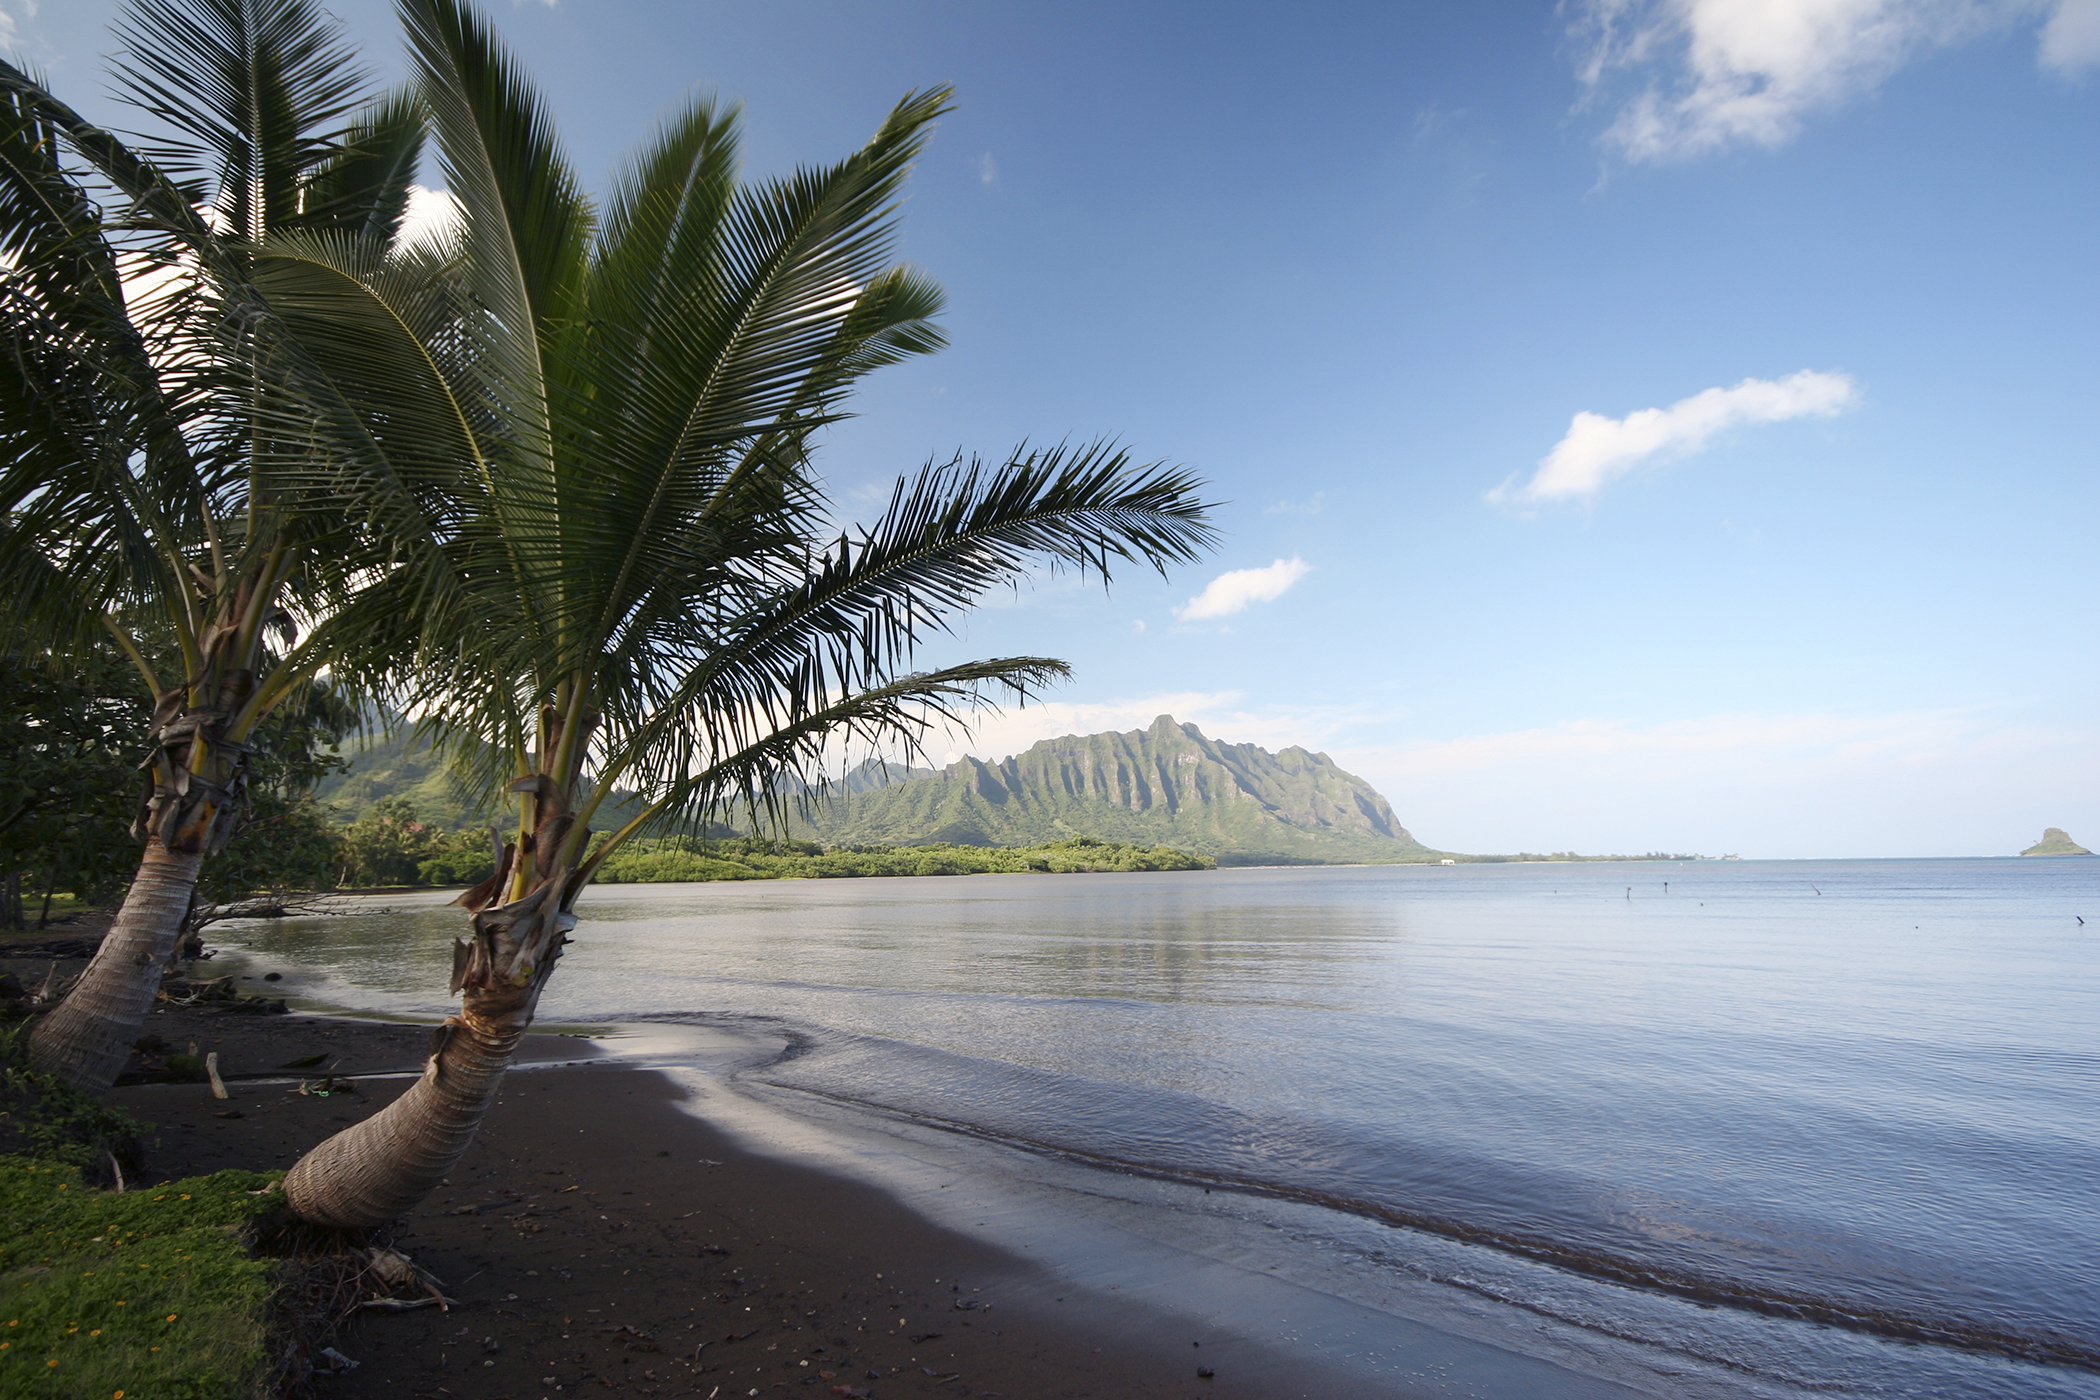 <strong>Koolaupoko, Hawaii. </strong>This southeastern district off the windward coast of Oahu has the lush valleys, gorgeous beaches, and barrier reefs that the 50th state is famous for, along with a rich history and a 3.6% unemployment rate.